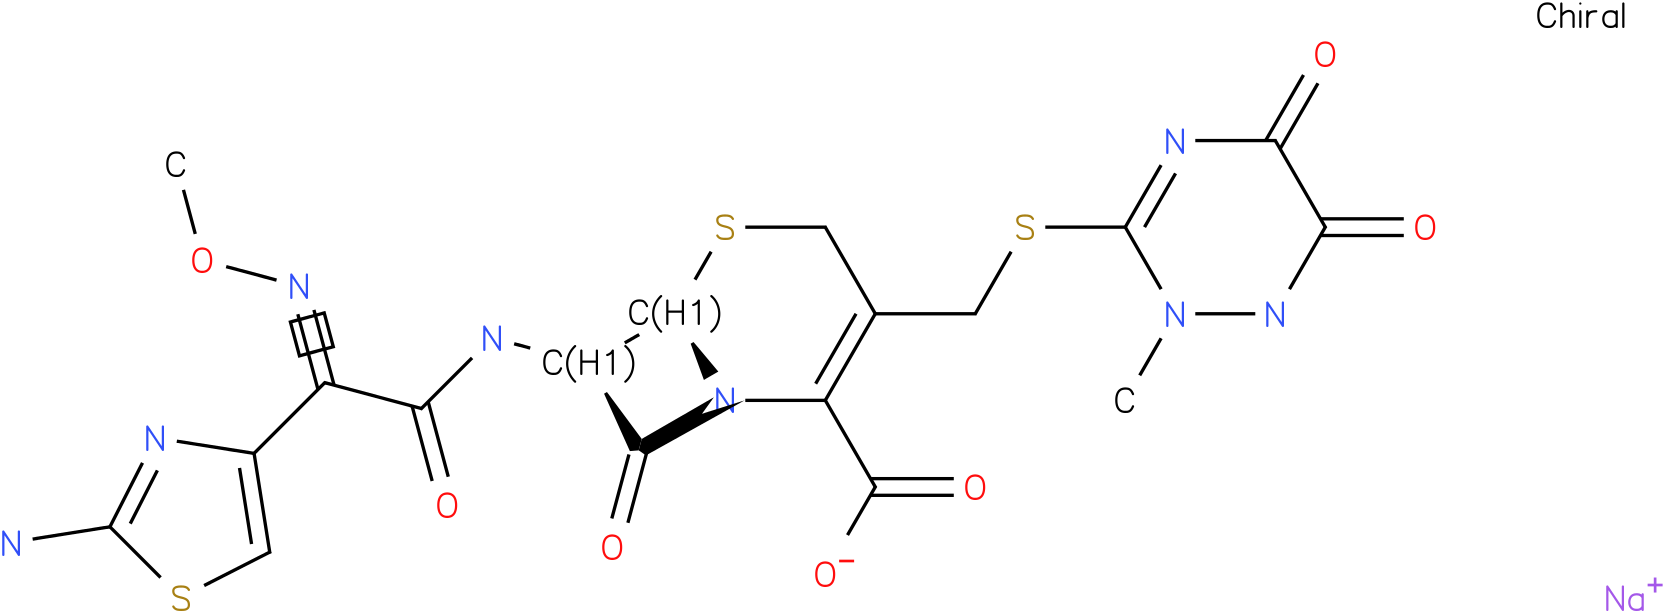 CEFTRIAXONE SODIUM CRUDE